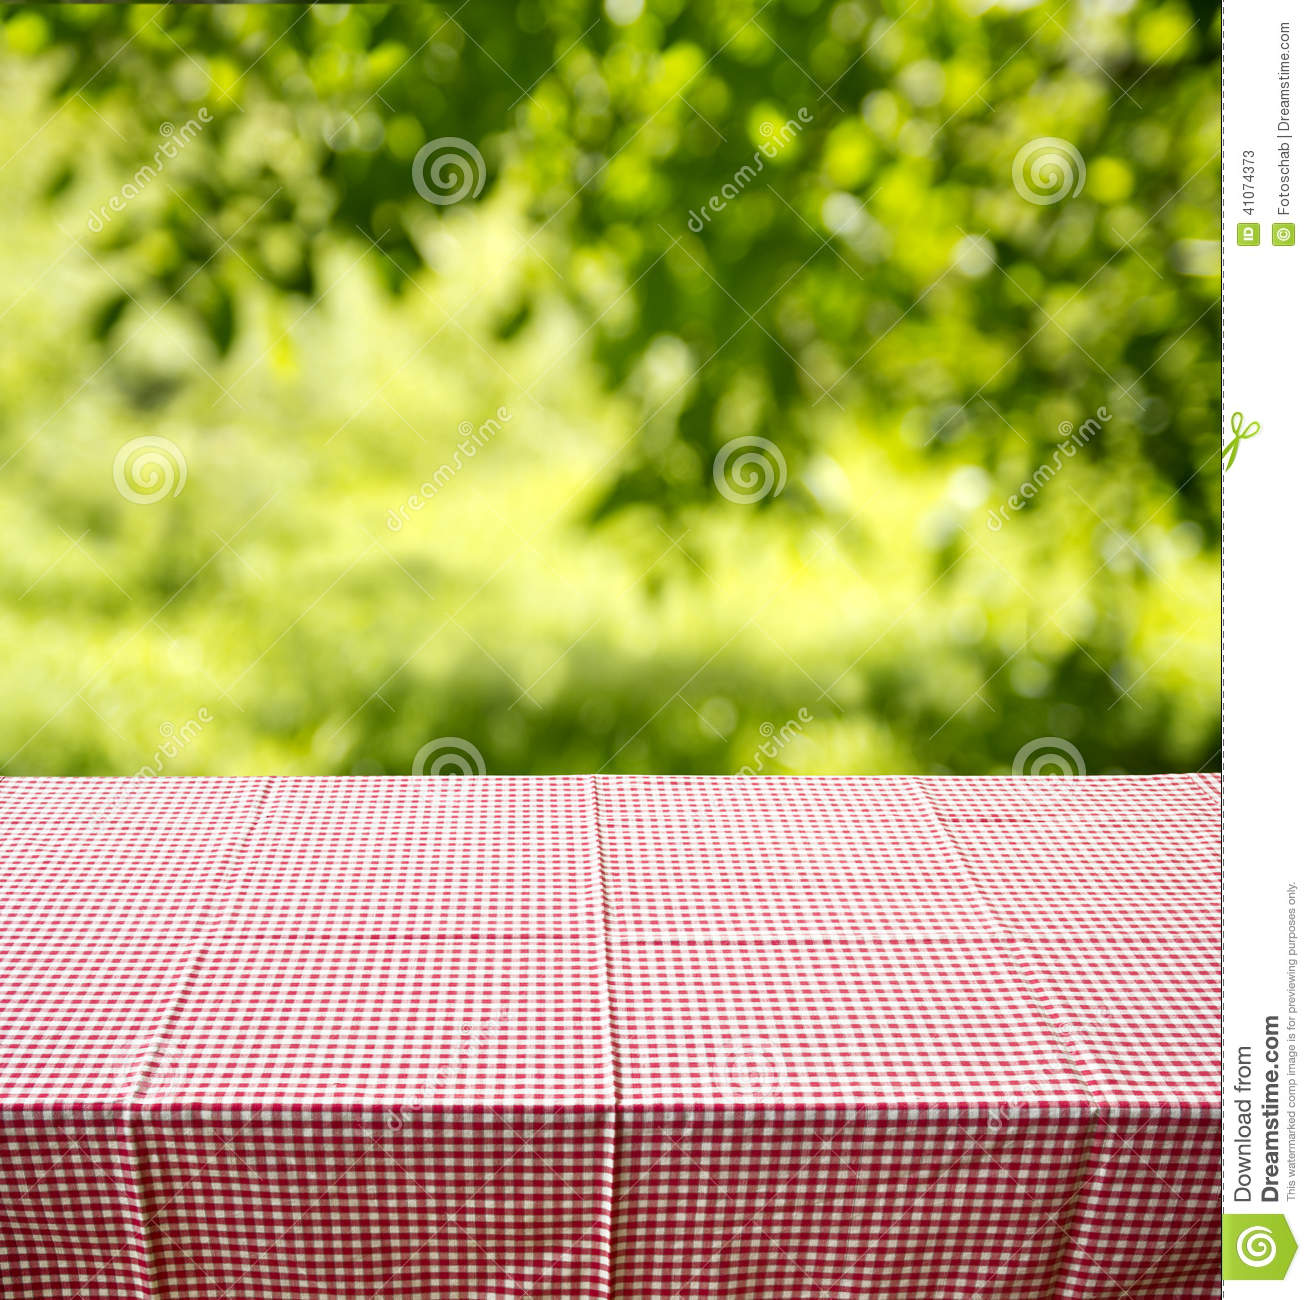 Picnic Table Background Stock Photo - Image: 41074373